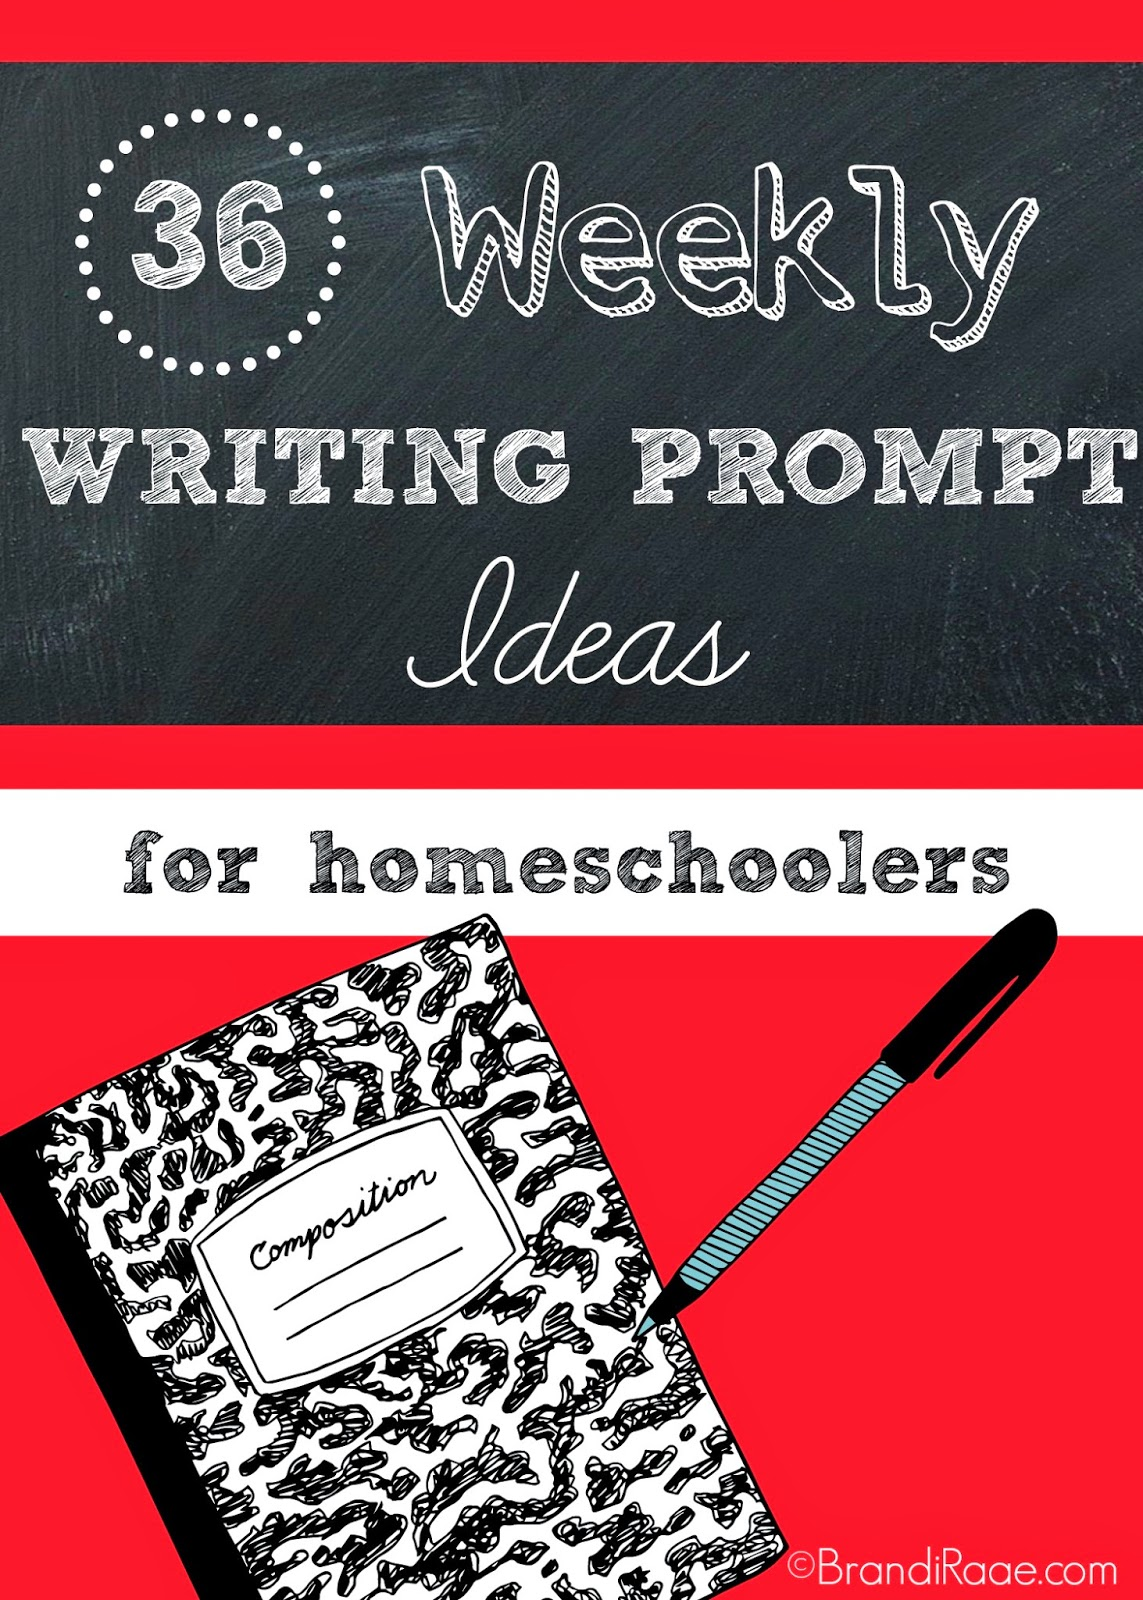 creative writing prompts for bloggers Use these writing prompts to get your brain cells firing  7 writing prompts for small business bloggers  they might just help get your creative juices flowing.